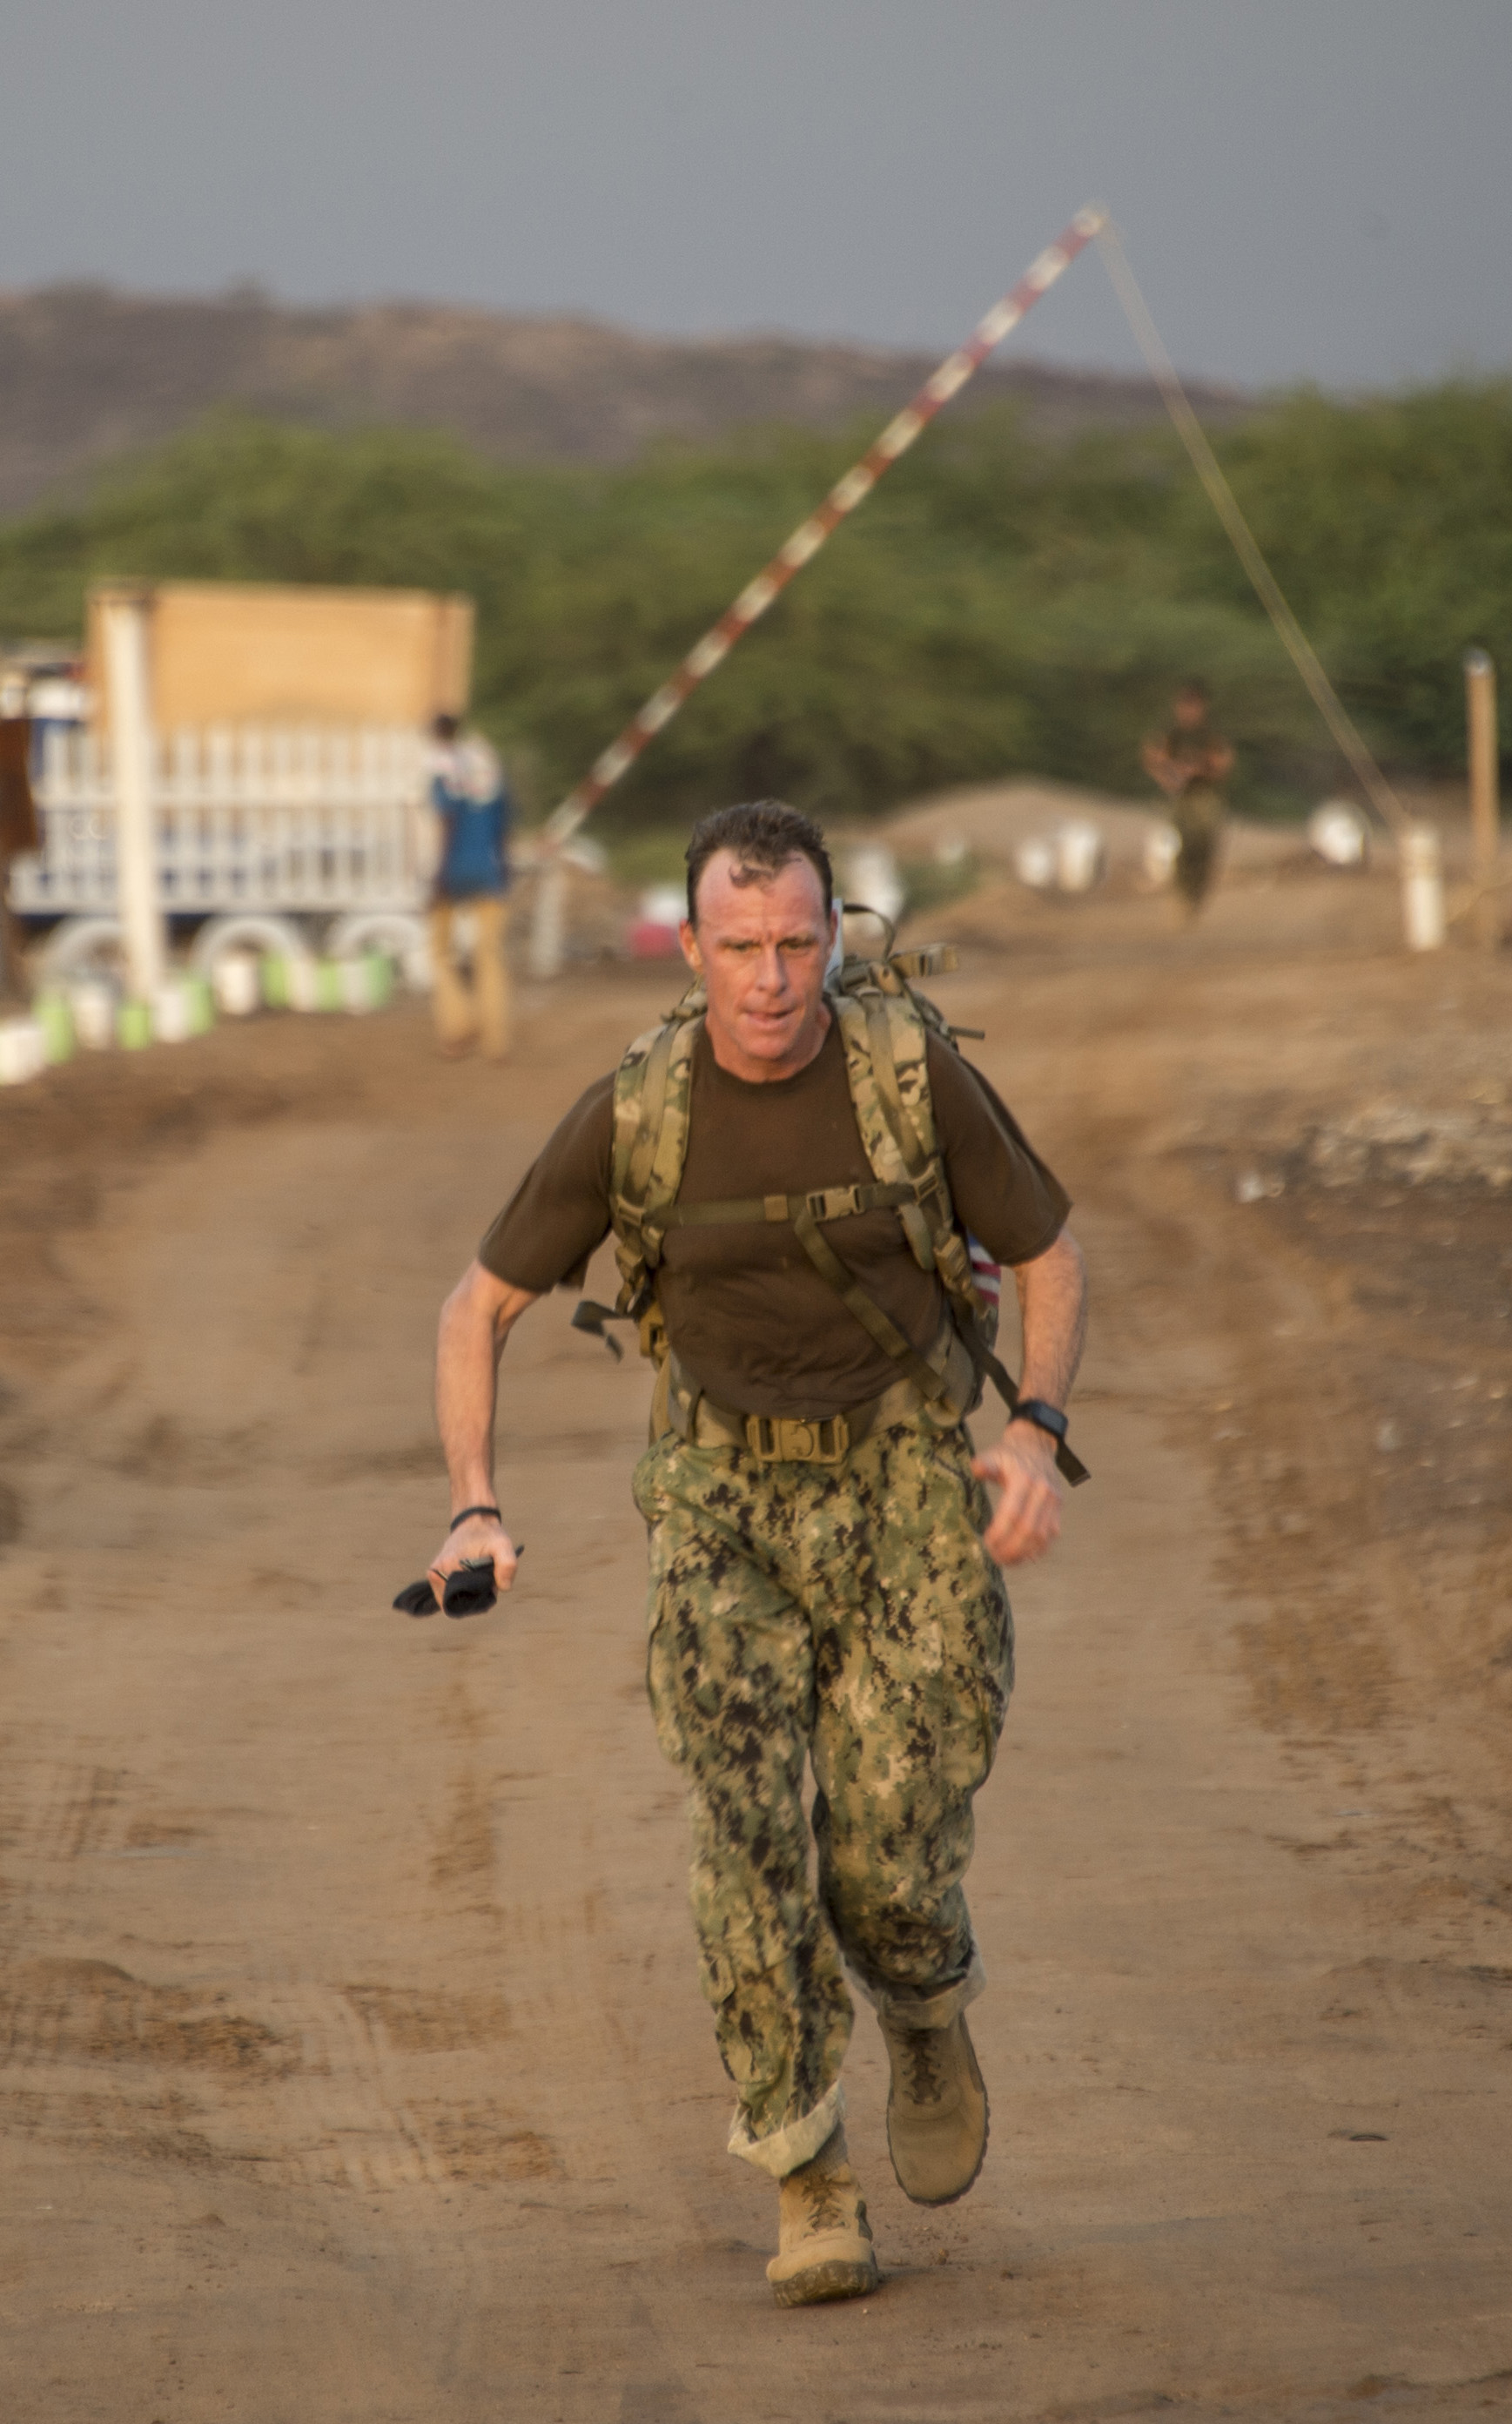 U.S. Navy Command Master Chief Geoffrey Steffee, Combined Joint Task Force-Horn of Africa command senior enlisted leader leads the ruck-march portion of the Joint Warrior Competition (JWC) outside of Camp Lemonnier, Djibouti, March 25, 2017. Steffee was the first person to complete the course. Competitors in the JWC put their physical fitness to the test by competing in 10 separate events designed to challenge their resiliency. (U.S. Air National Guard photo by Staff Sgt. Christian Jadot)